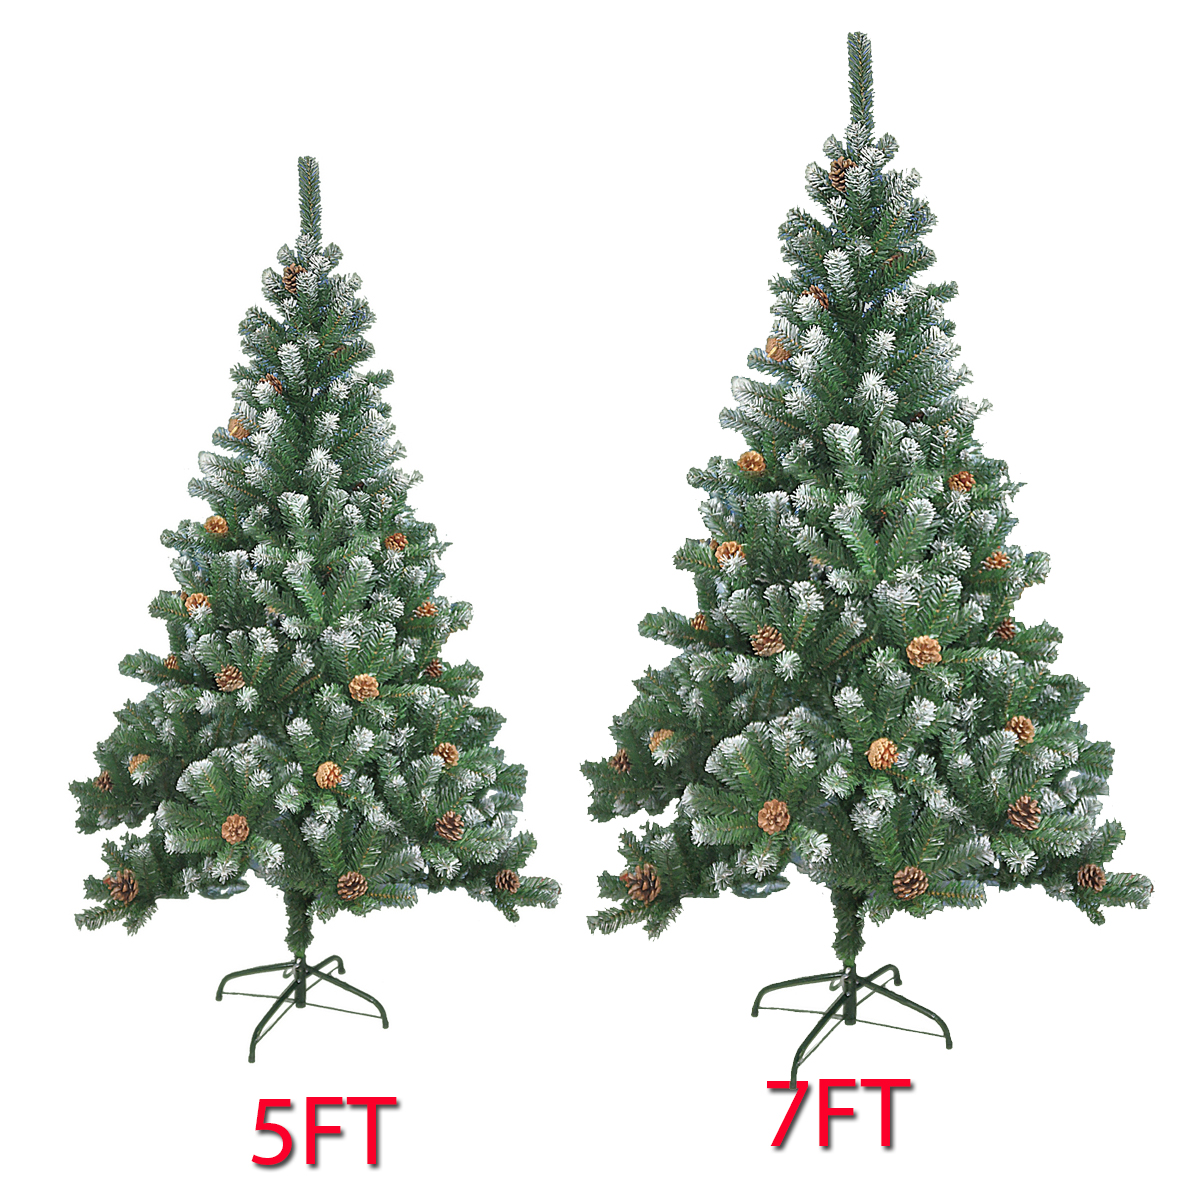 check out 47927 97c26 Details about 5/6/7FT LARGE ARTIFICIAL CHRISTMAS TREE SNOW & CONES  REALISTIC XMAS DECORATION